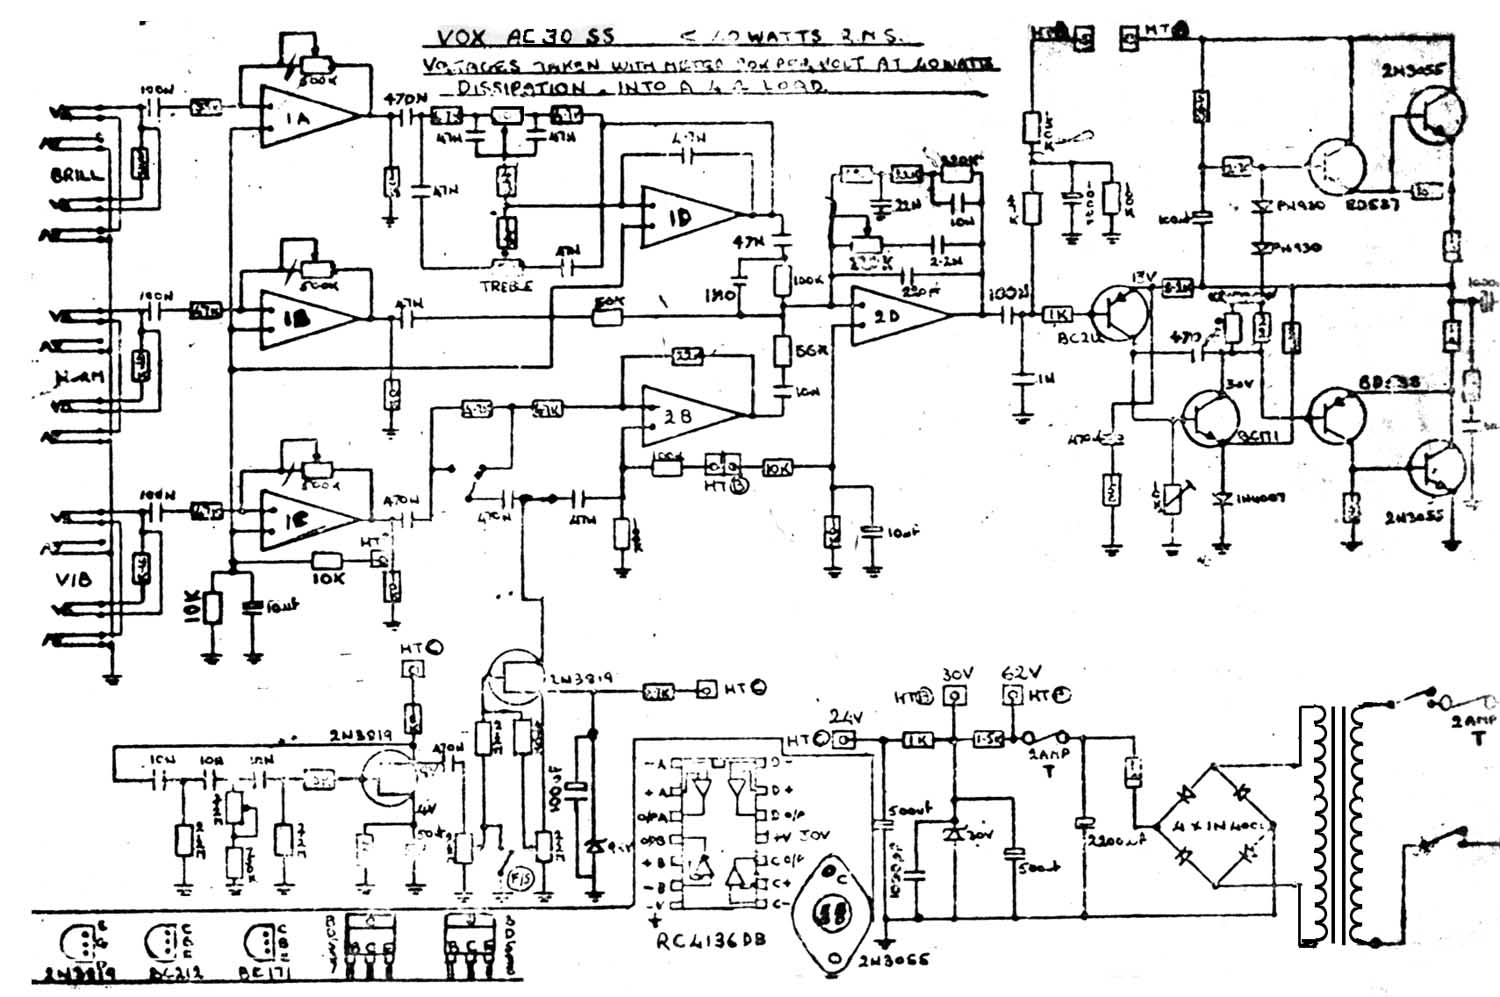 hight resolution of guitar amplifier schematics free download wiring diagram schematic fender twin reverb schematics electronic free download wiring